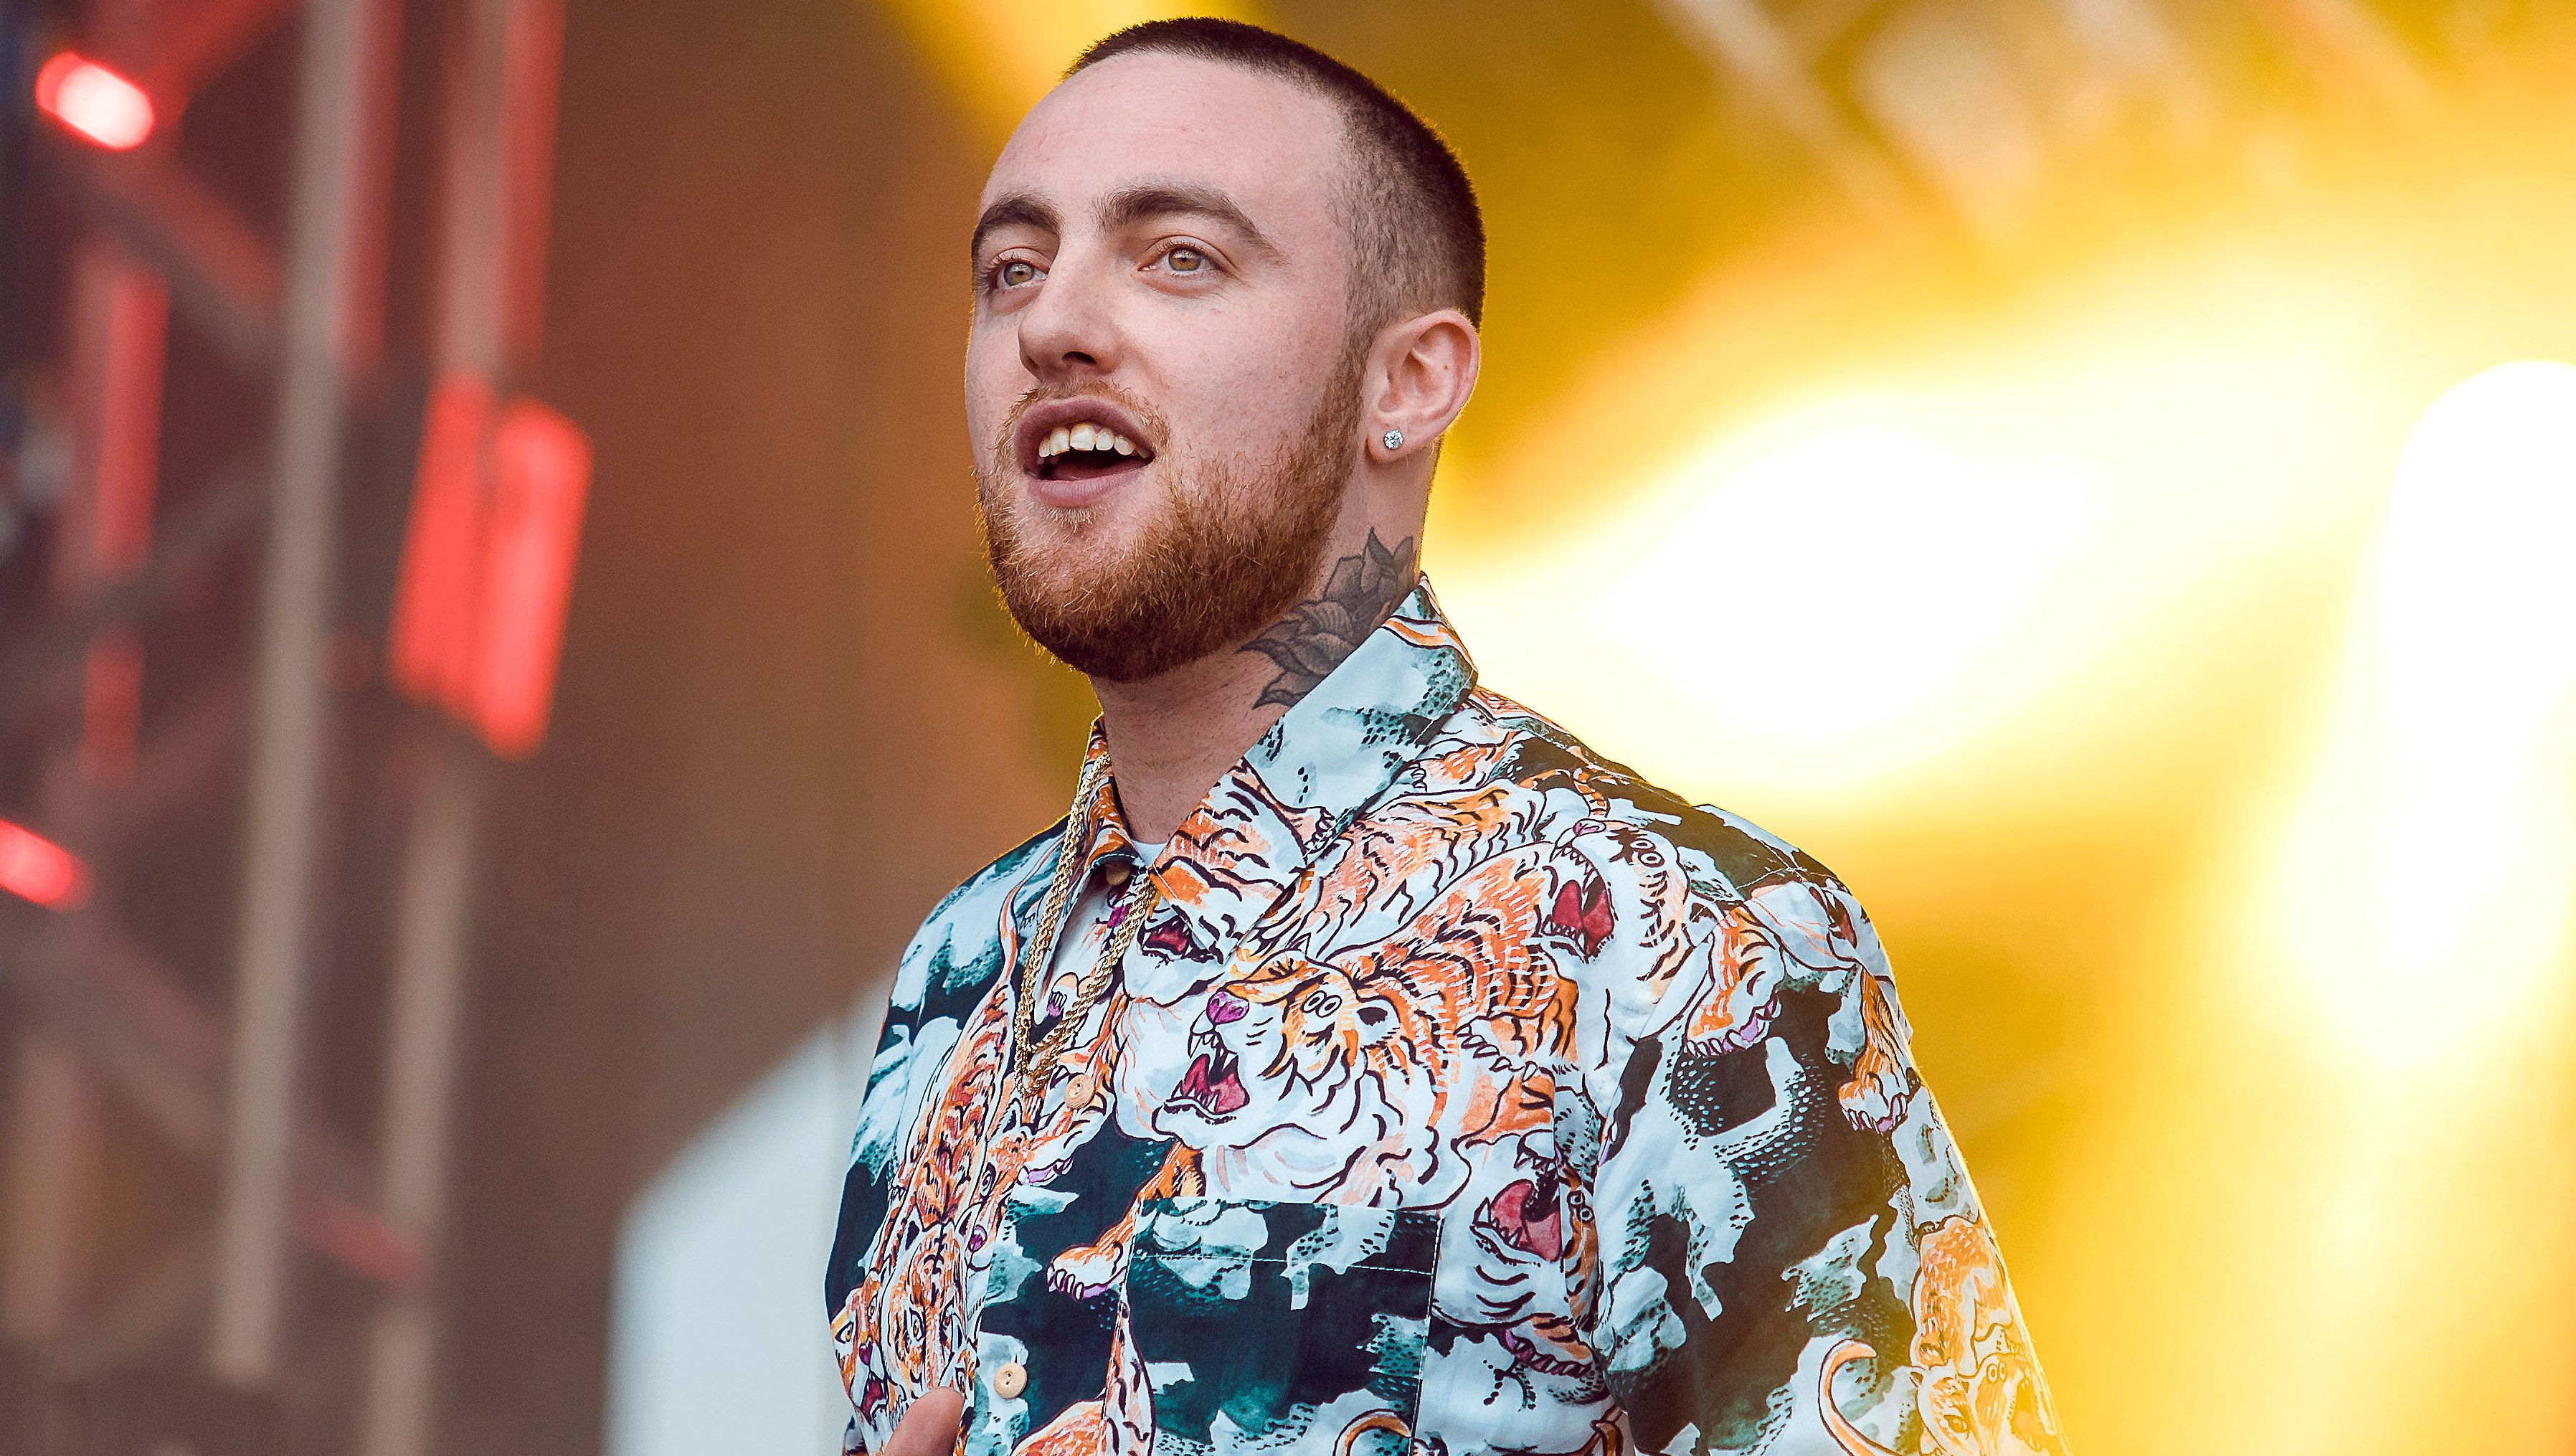 Mac-Miller-Family- Knows-He-With- Them-in-Spirit-on- His-27th-Birthday